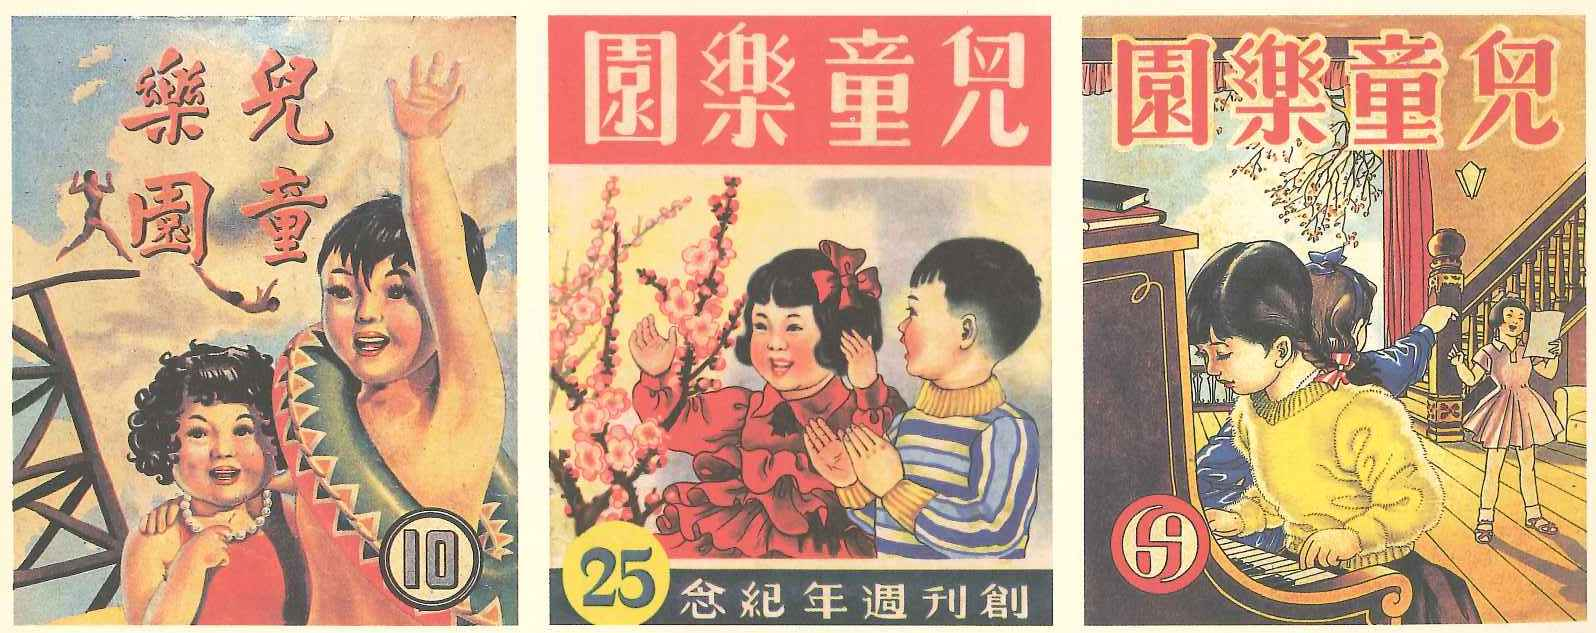 Hong kong dating culture